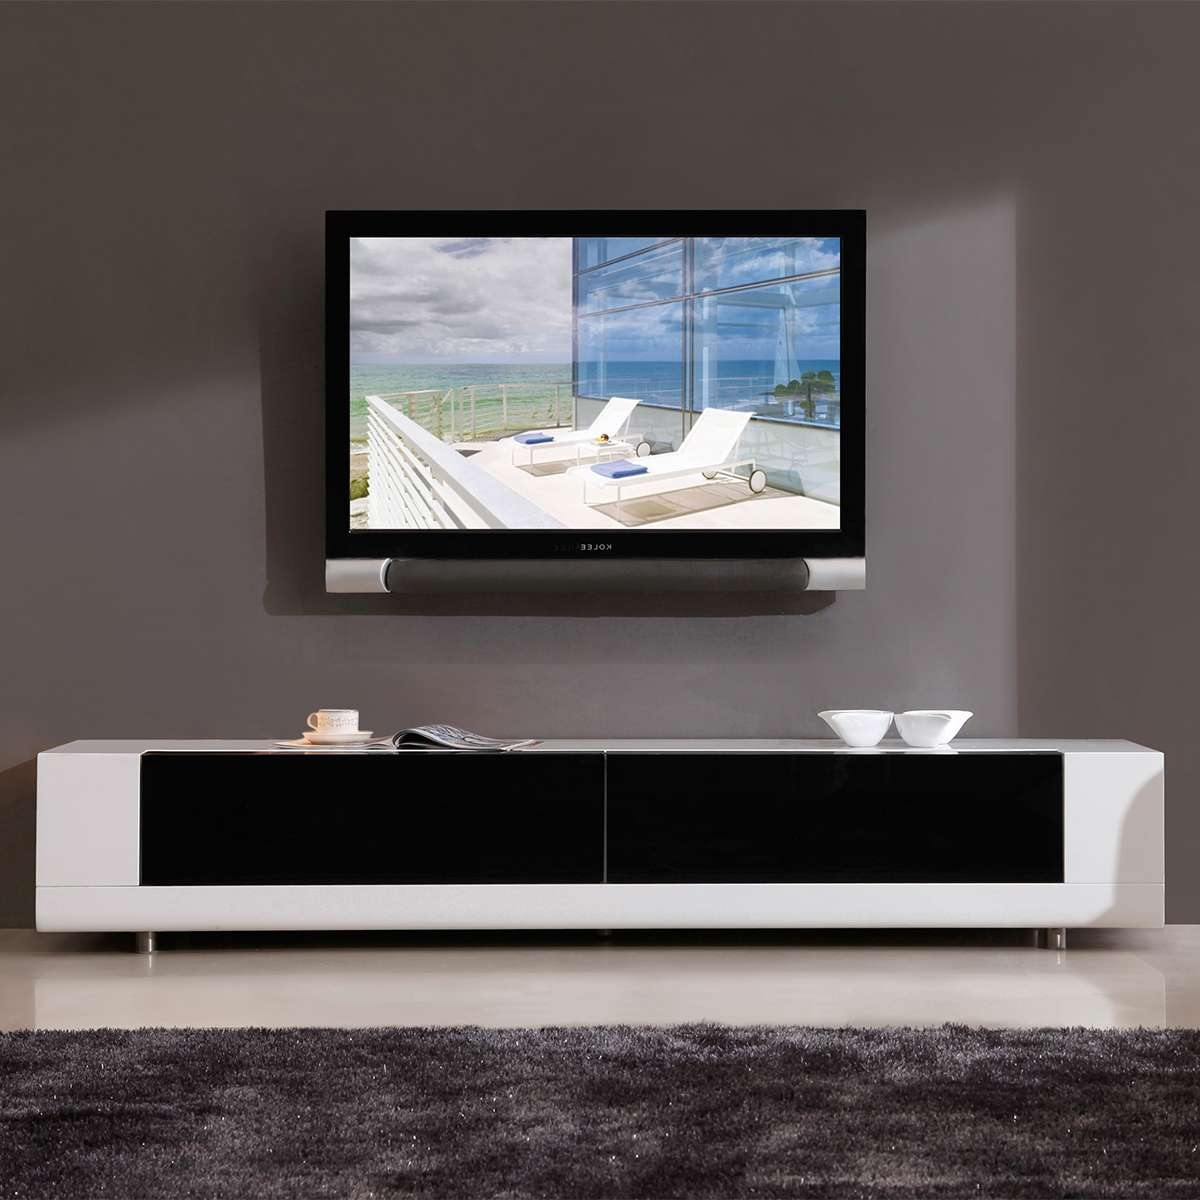 B Modern Minimalist Design Contemporary Tv Stands & Furniture At For Contemporary Tv Stands (View 3 of 15)